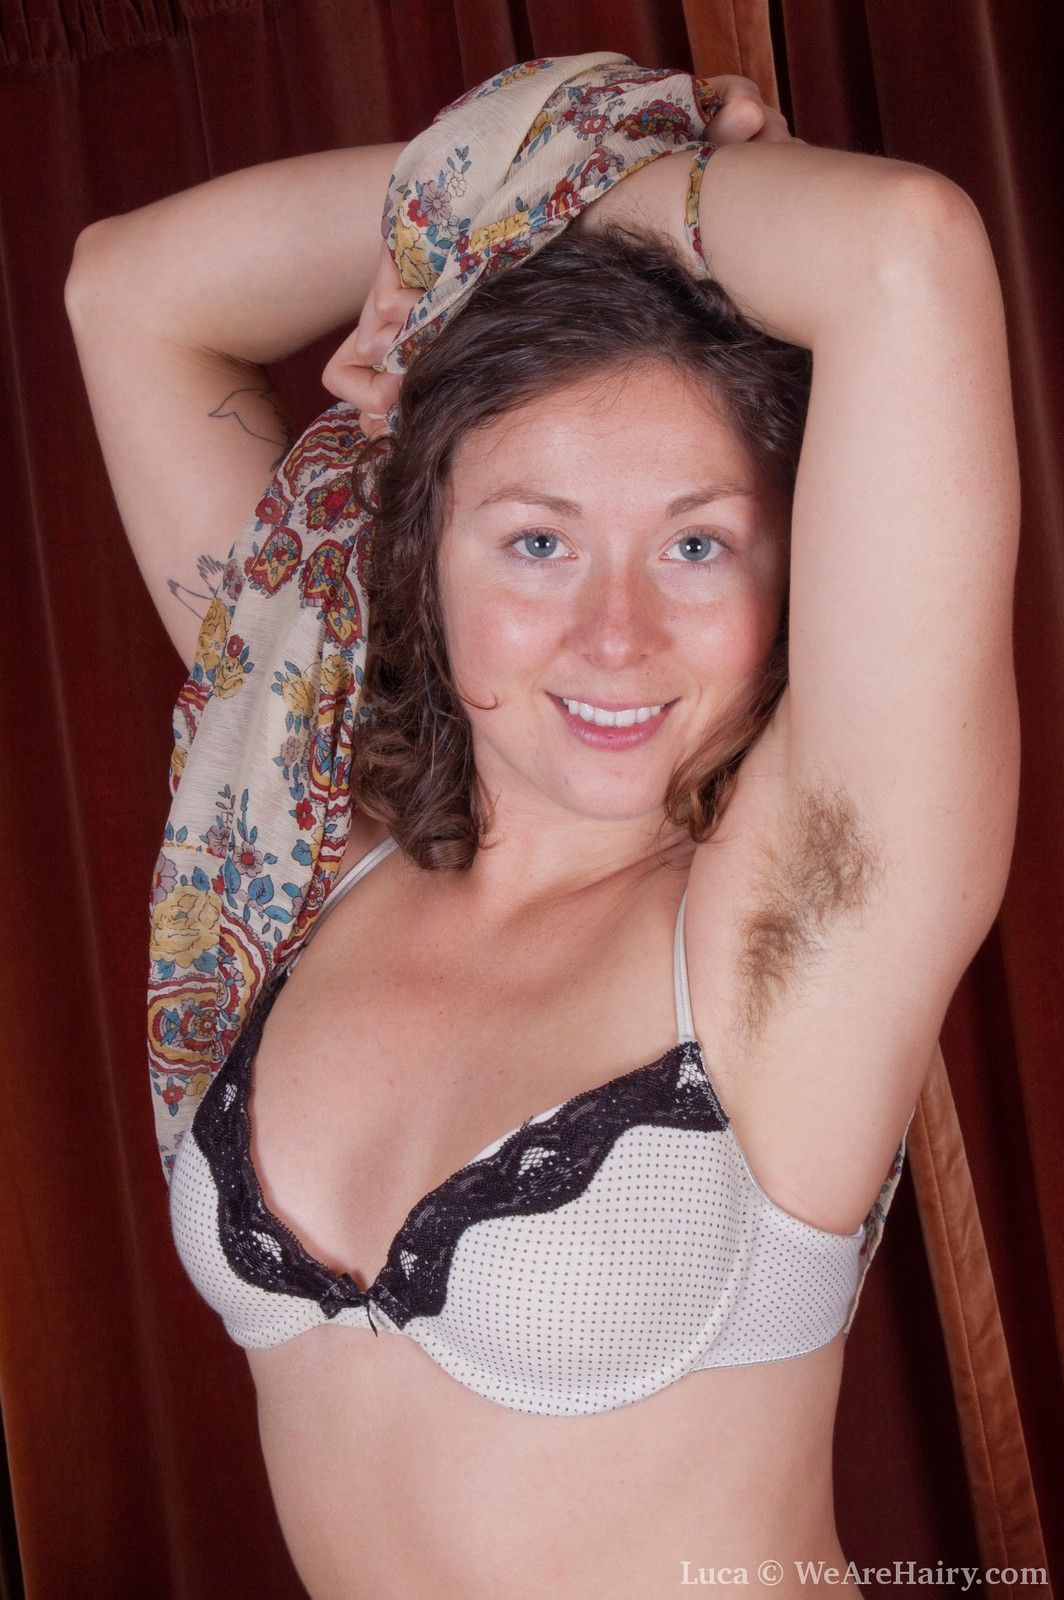 ... video of hairy women sex, free hairy pussy ladies @ Hairy Naked Girls